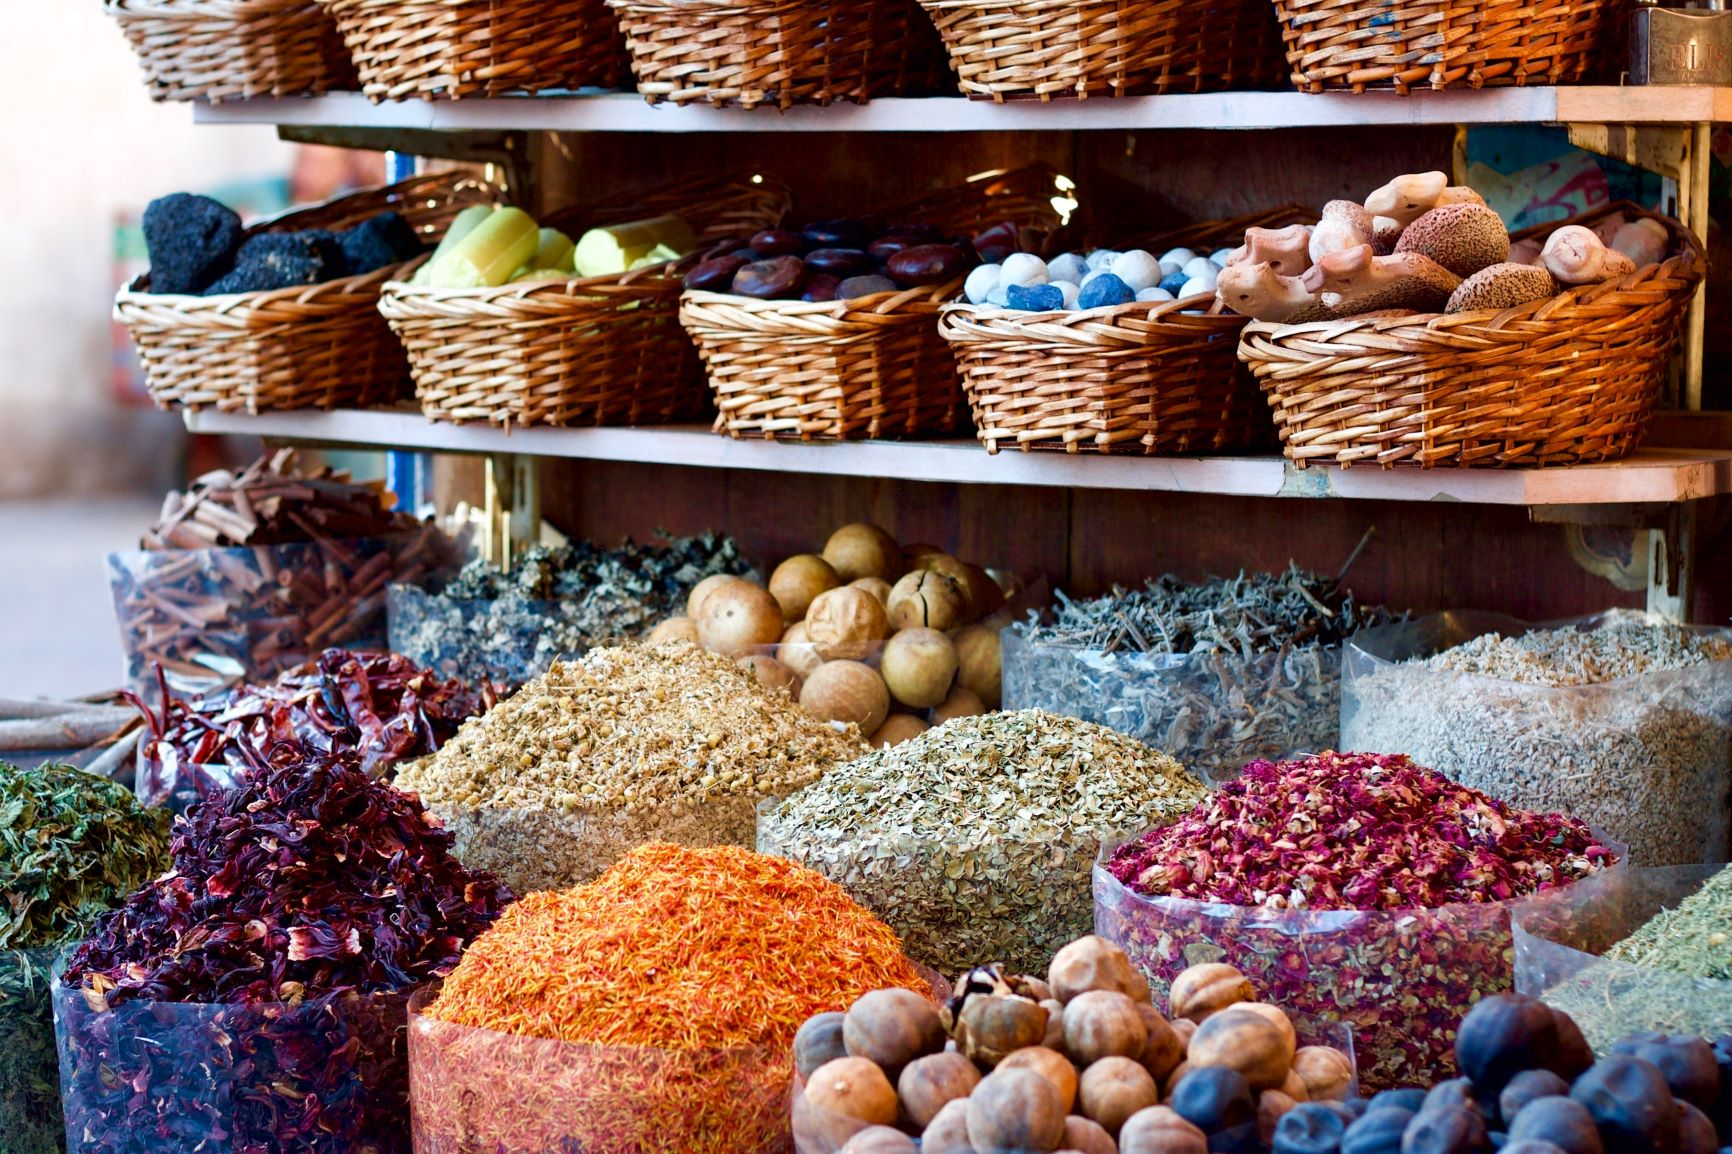 Egypt: August inflation hits 2nd lowest level in 10 years; stable interest rates